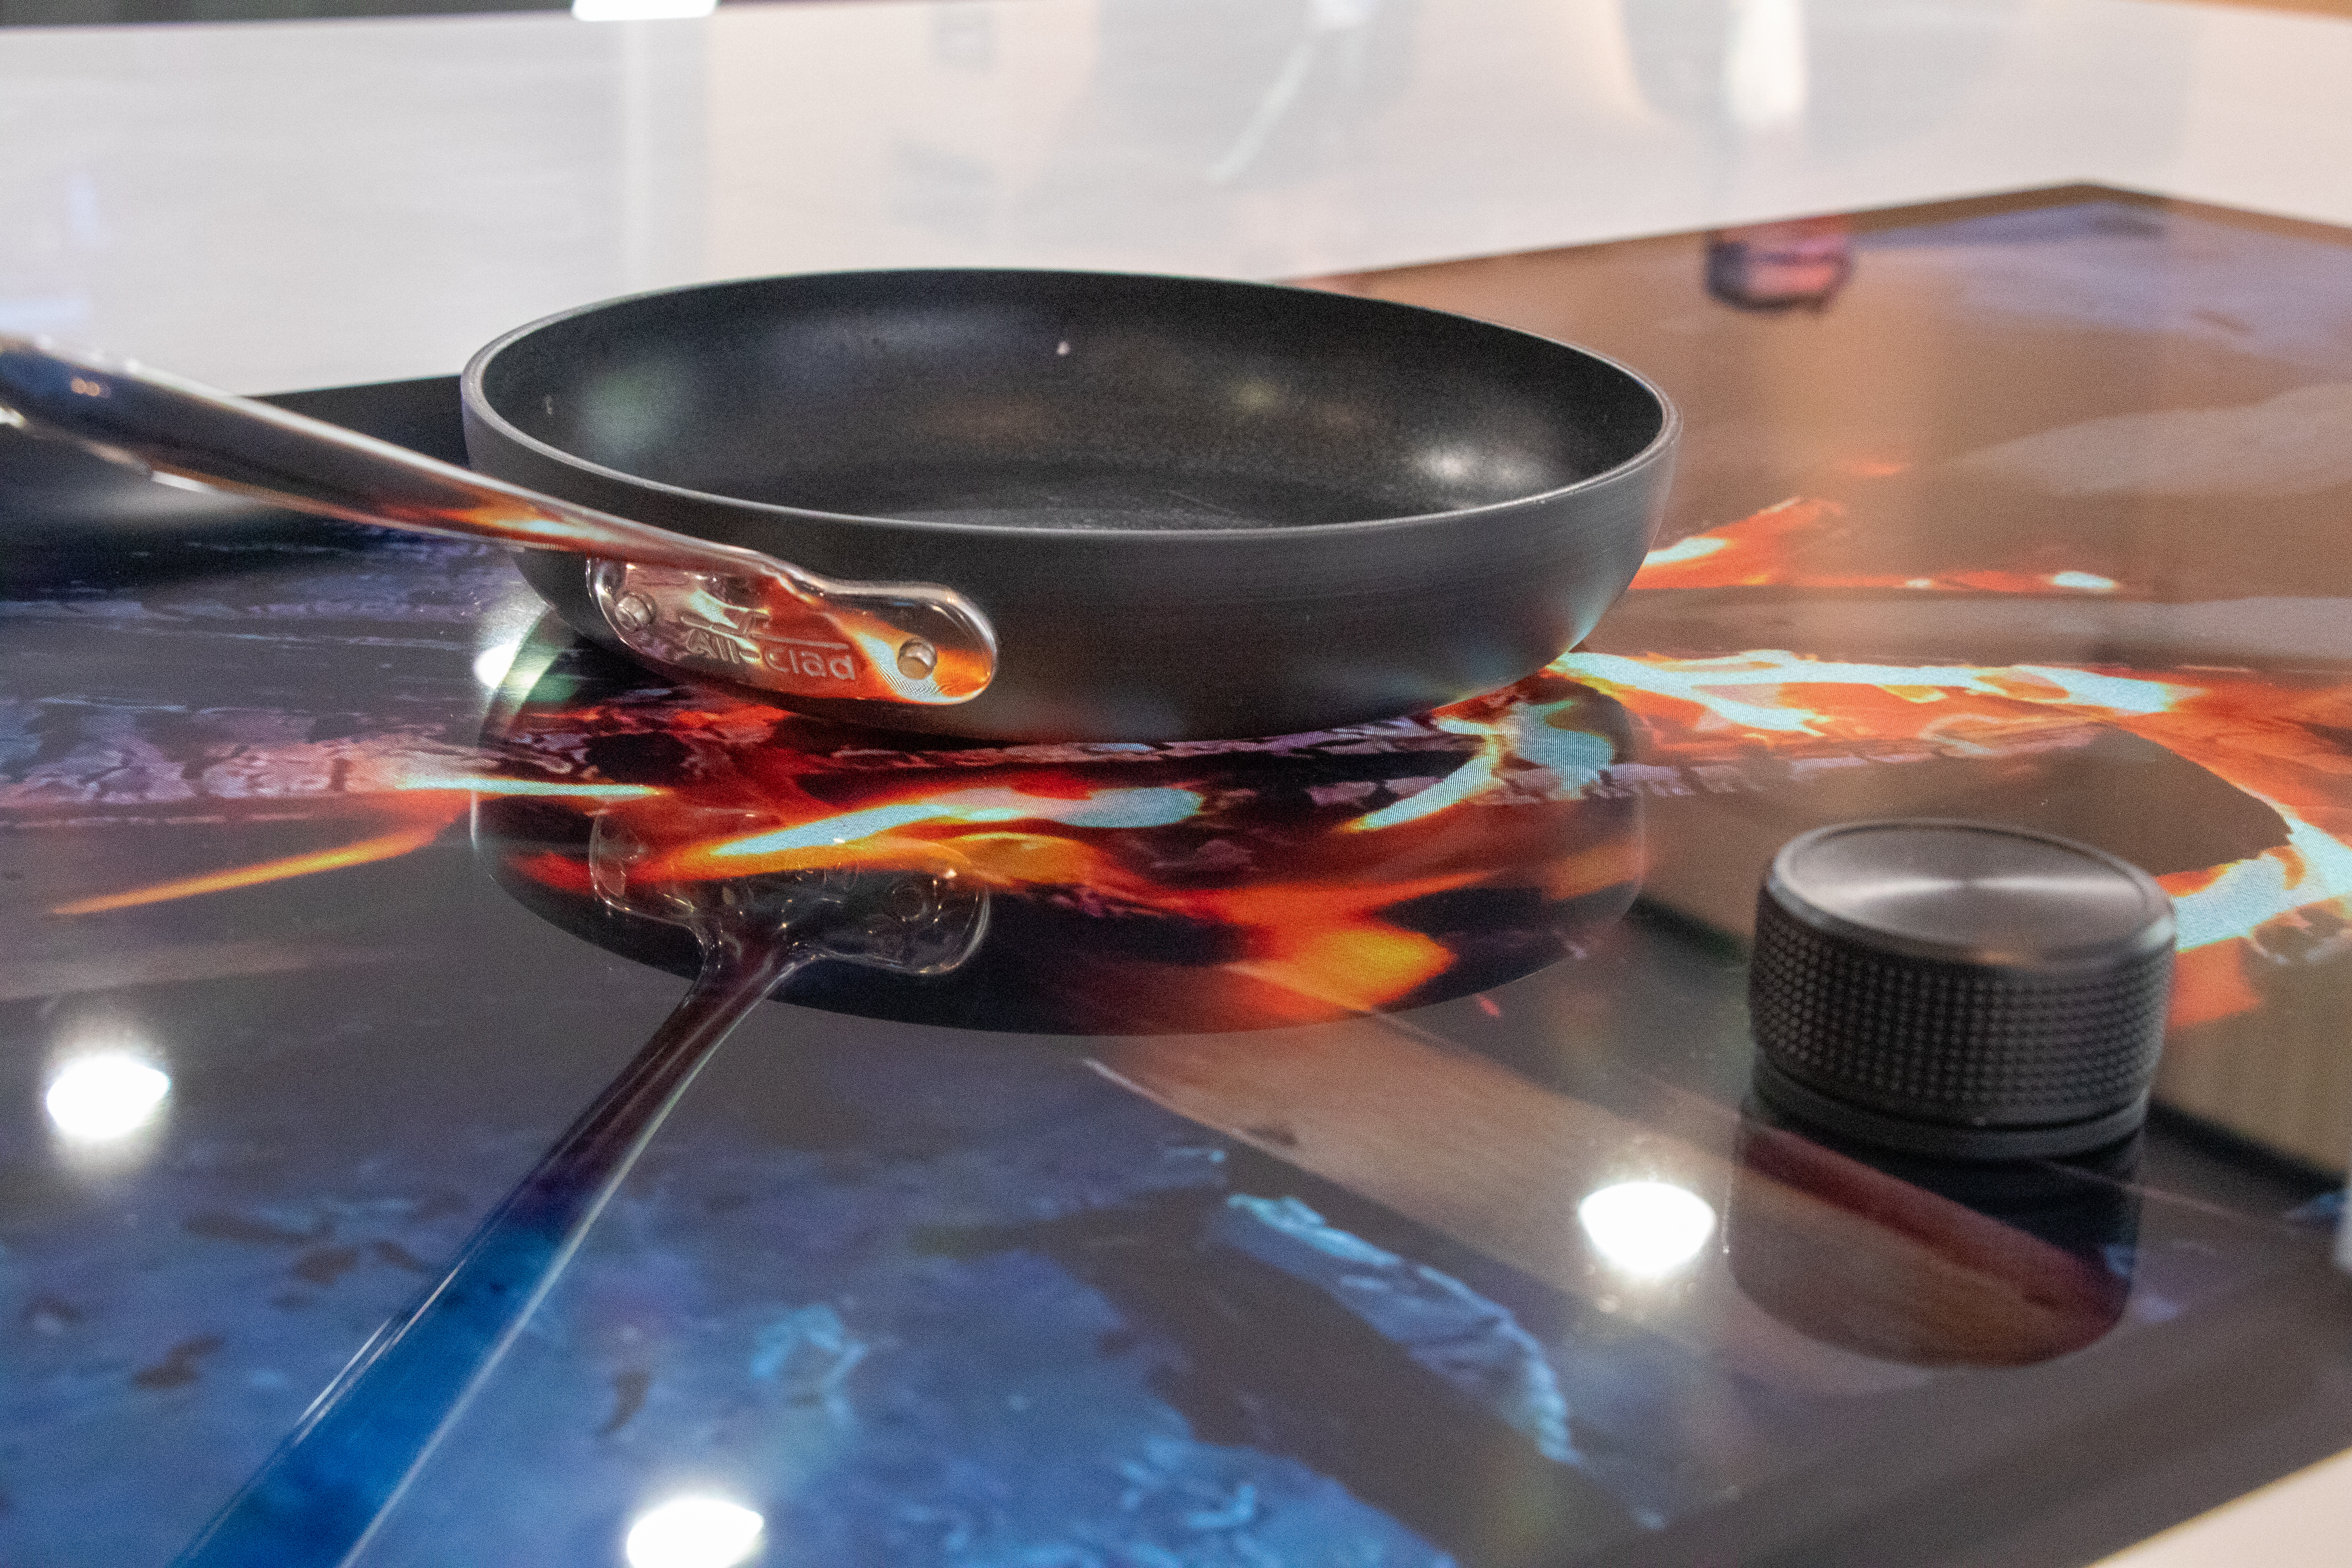 GHSP to Reveal World's Most Entertaining Induction Cooktop at CES Featured Image